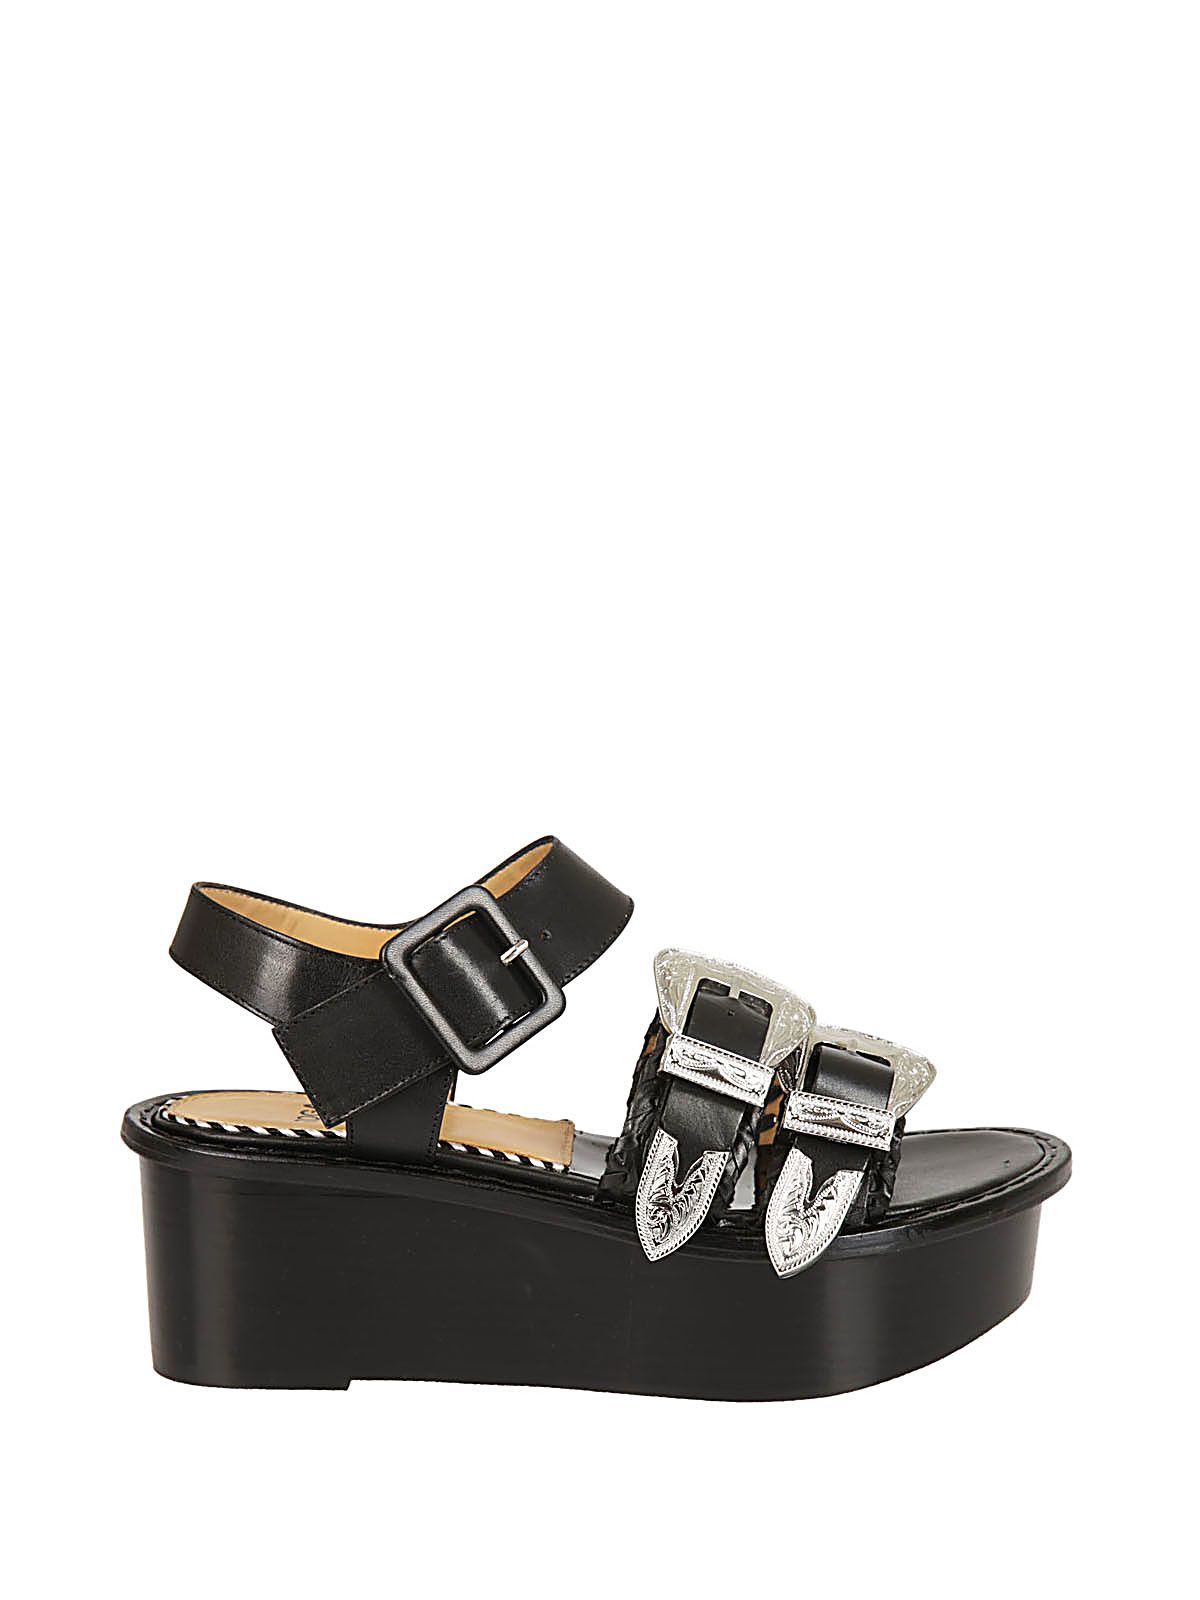 Toga Pulla Buckled Platform Sandals